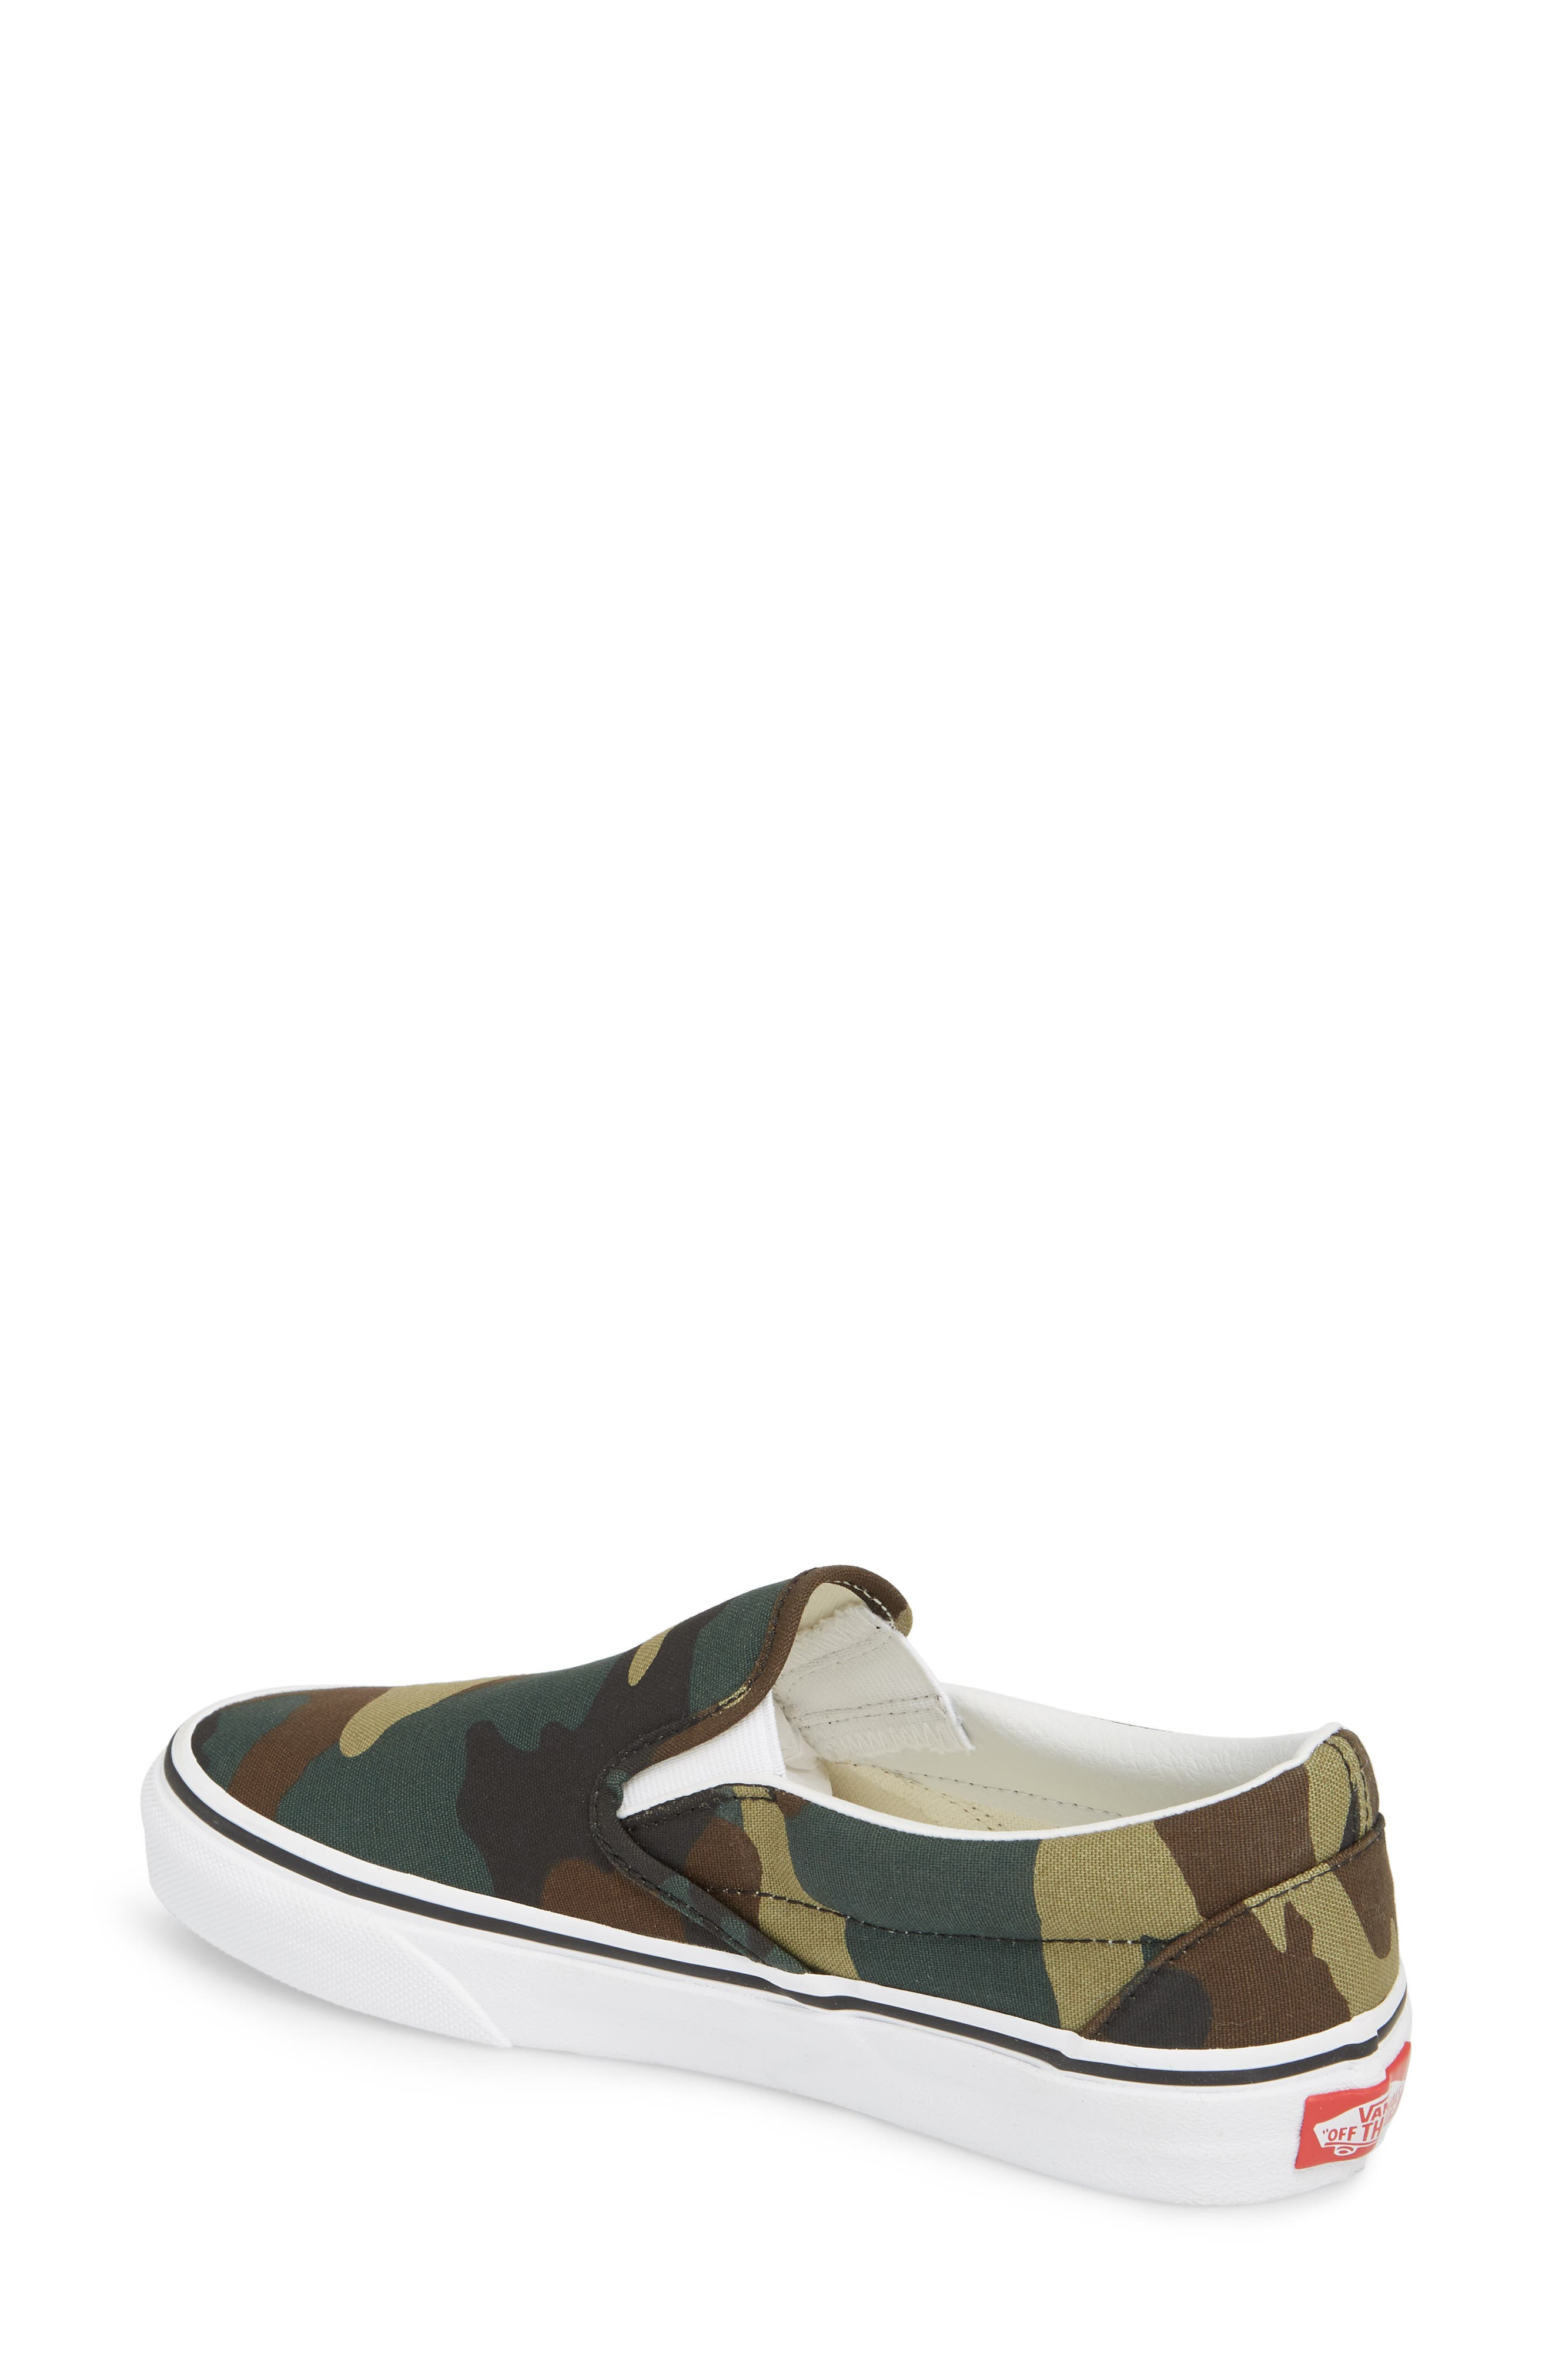 Classic Slip-On Sneaker,                             Alternate thumbnail 2, color,                             Black / Woodland